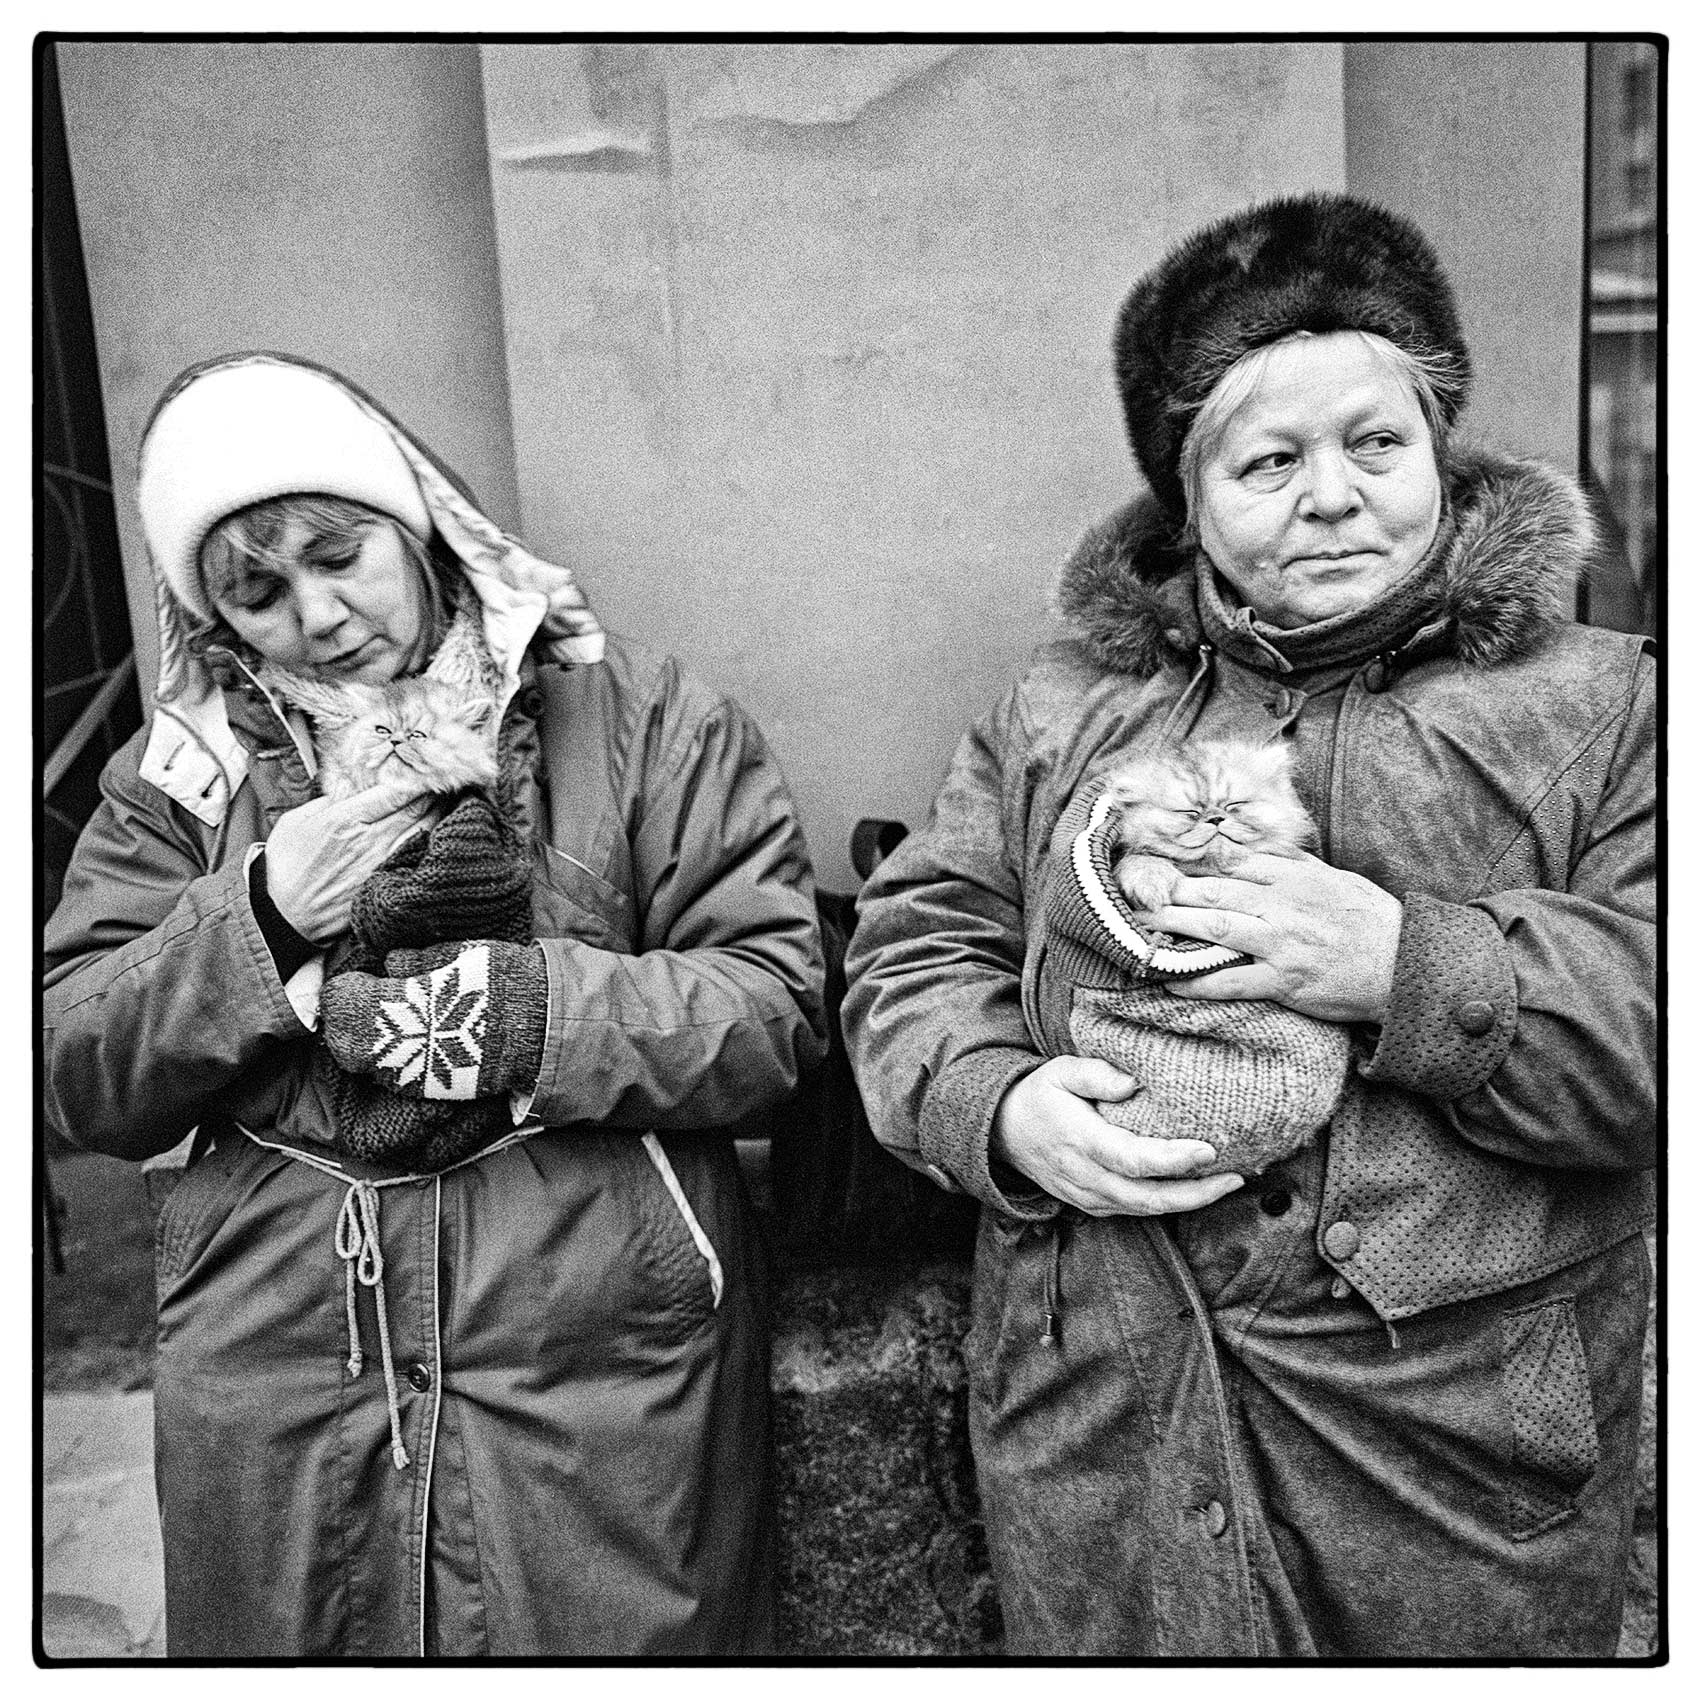 two-woman-hold-kittens-for-sale-on-the-winter-streets-of-central-moscow